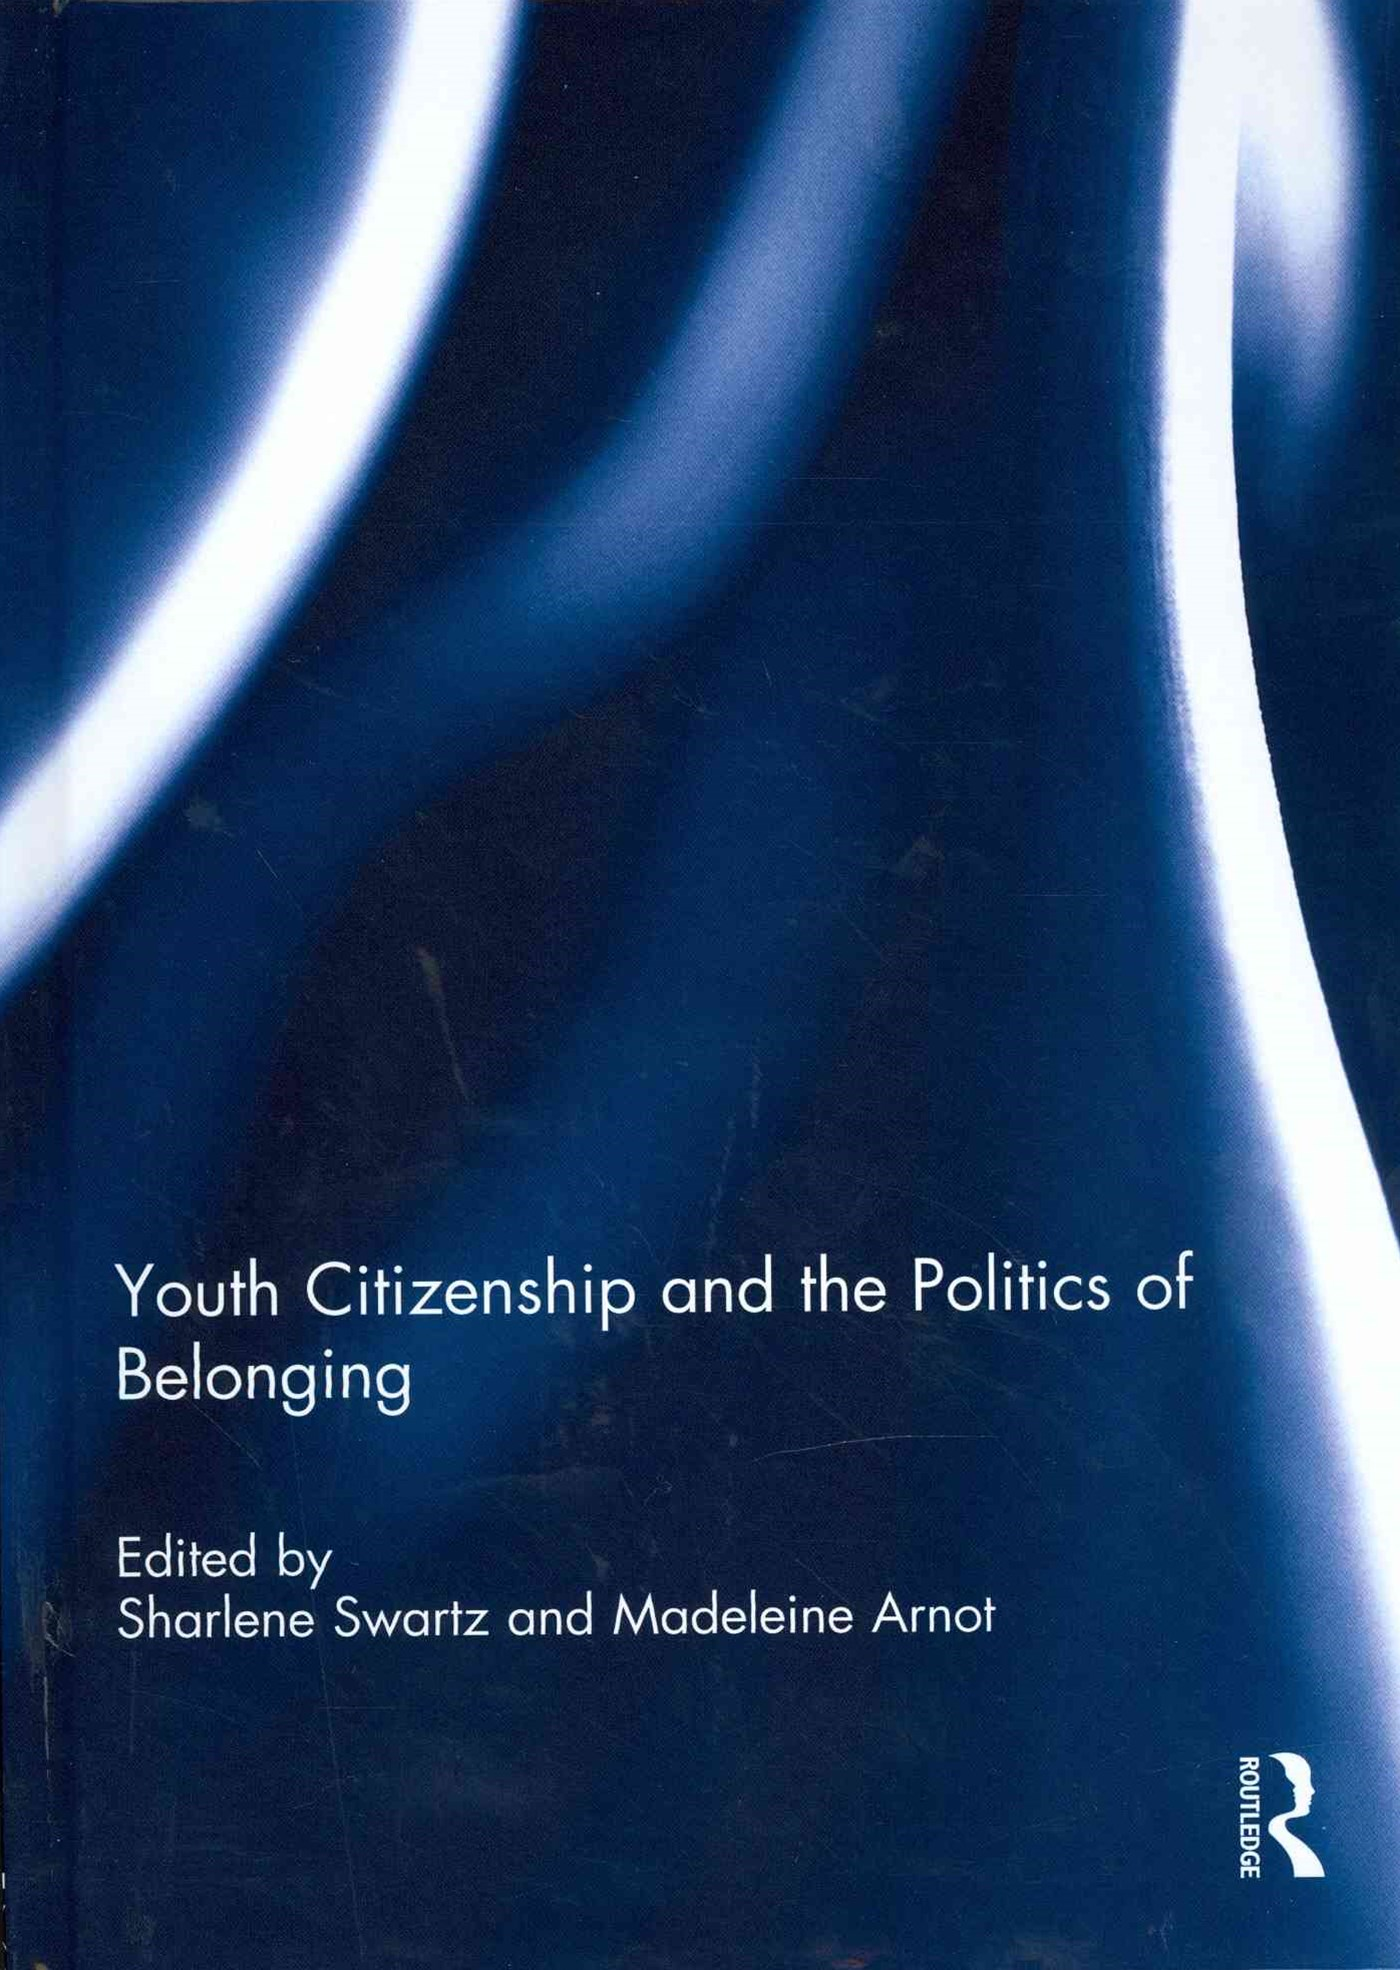 Youth Citizenship and the Politics of Belonging